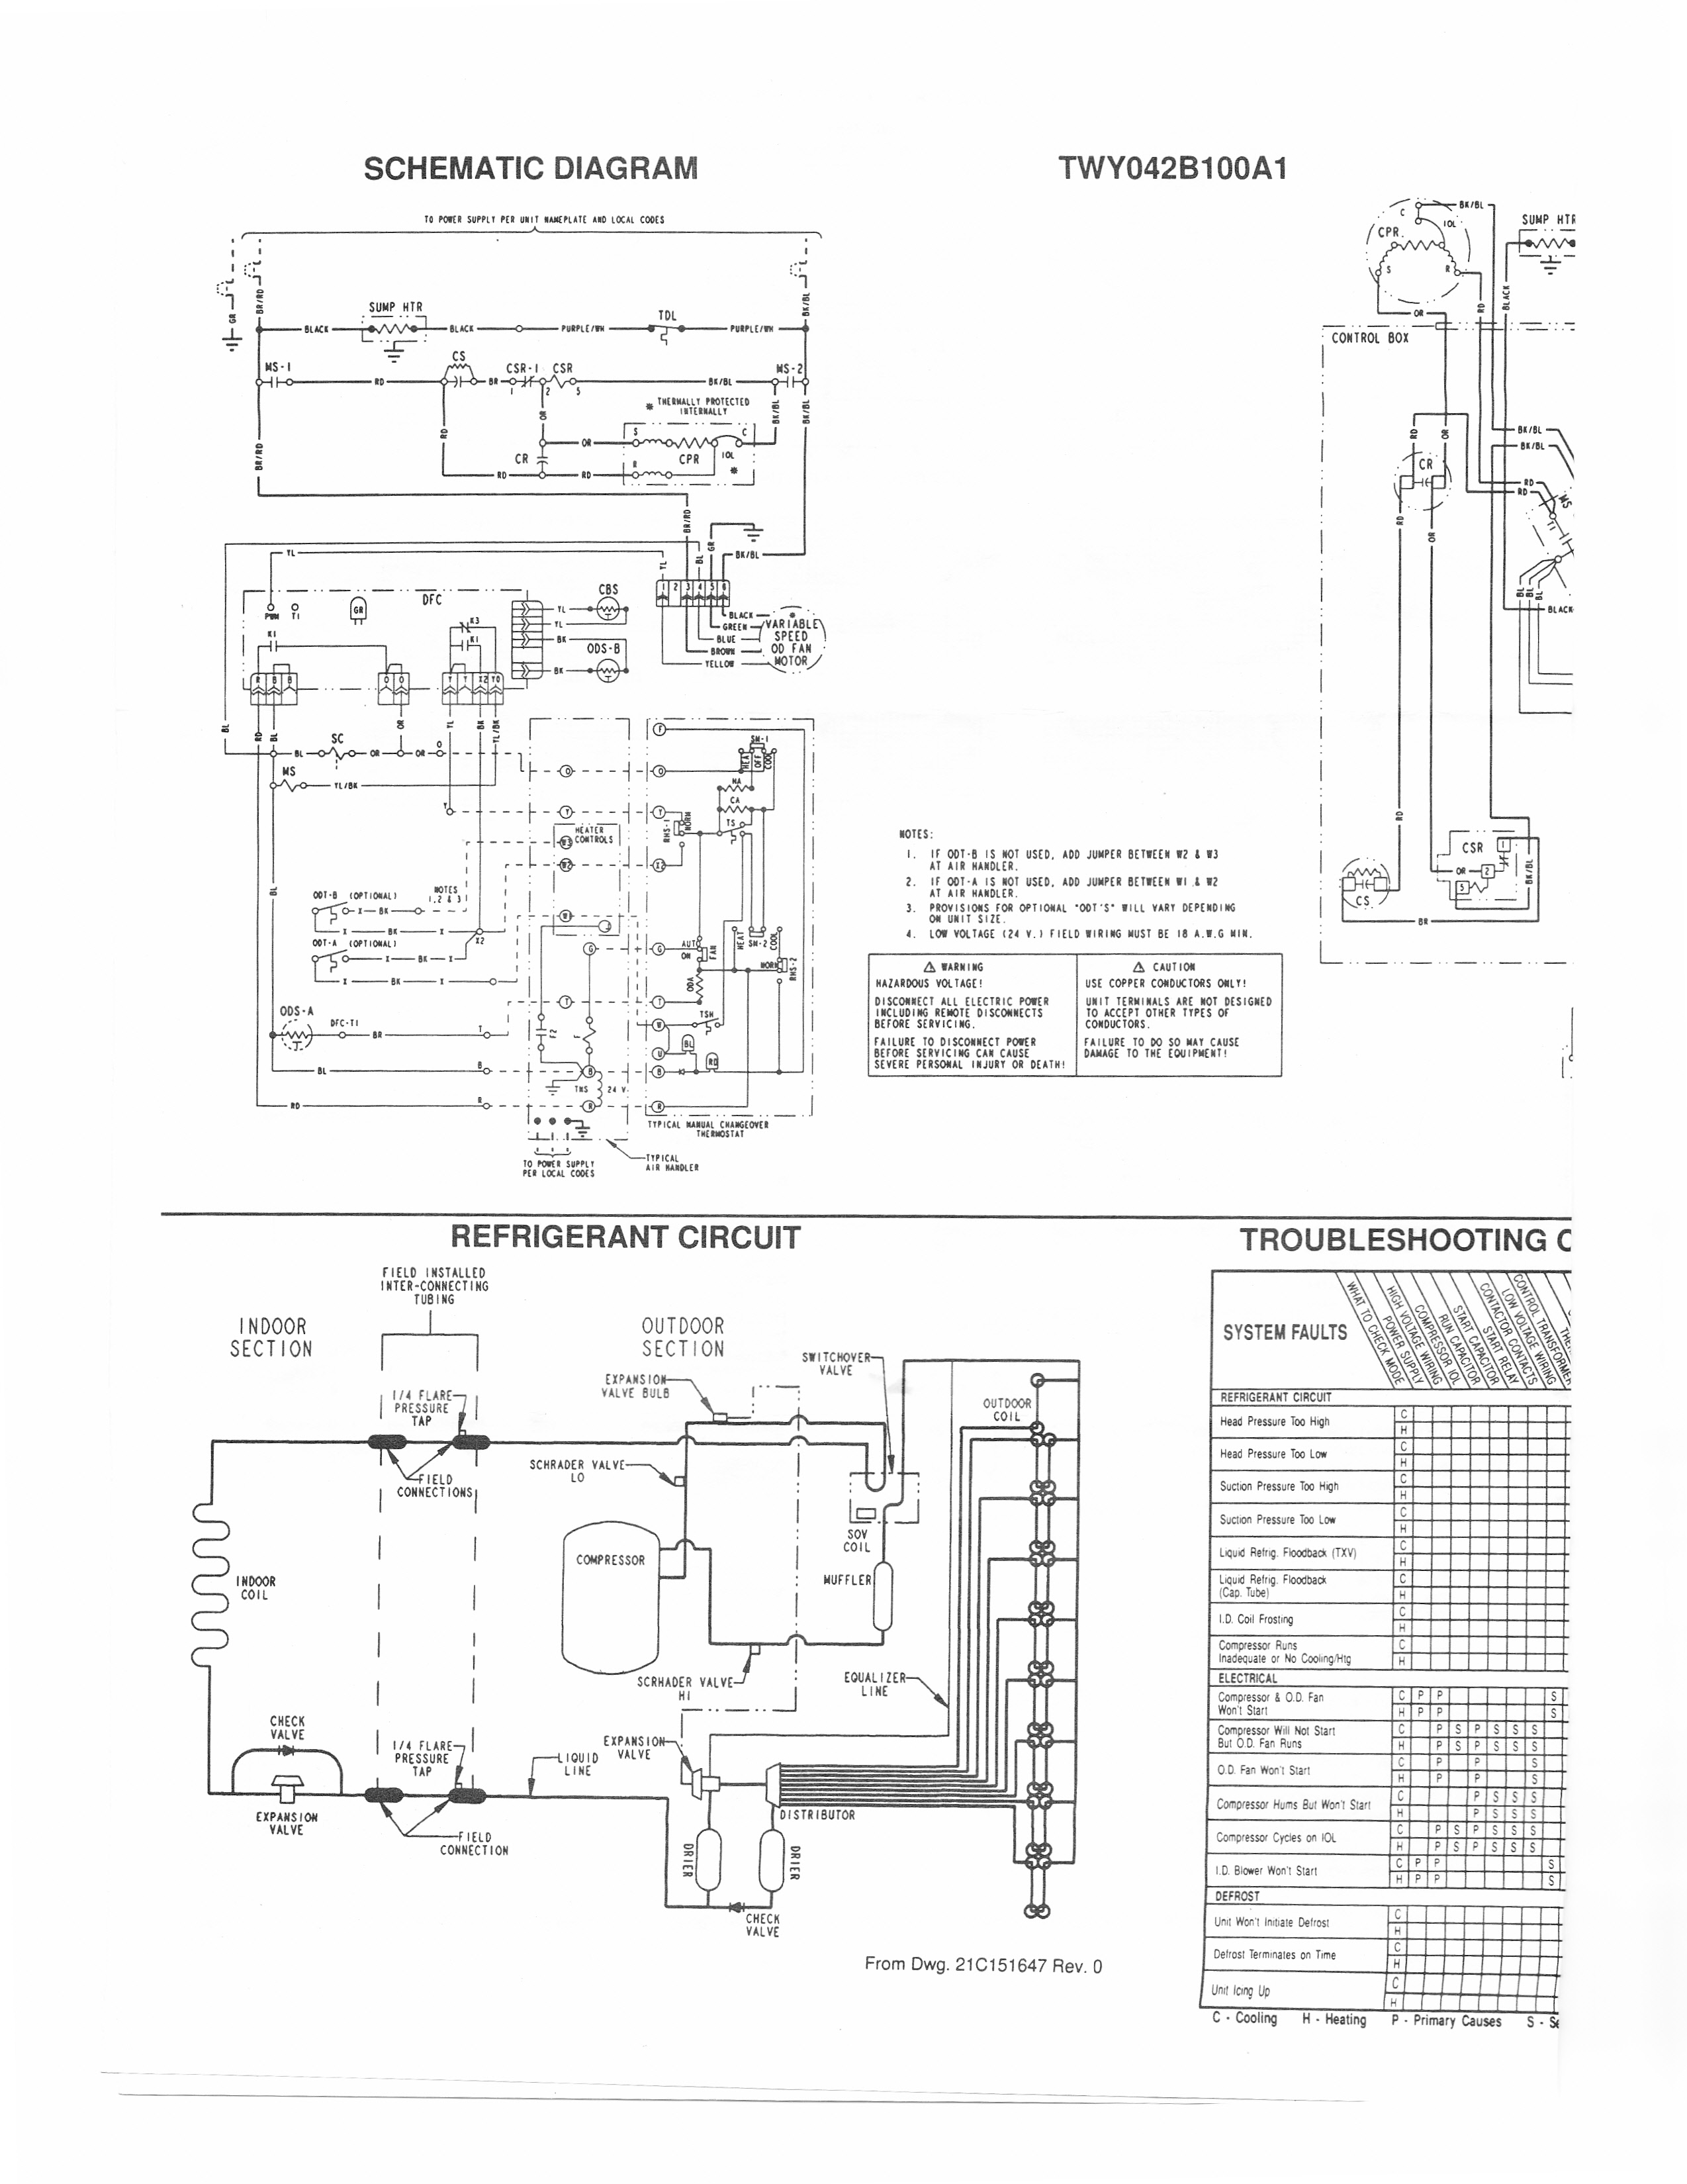 Wiring Diagram For 96 Nissan Xe Pickup Blog About Diagrams Chevy Truck Wwwjustanswercom 2hl7r Jeep Grand Cherokee